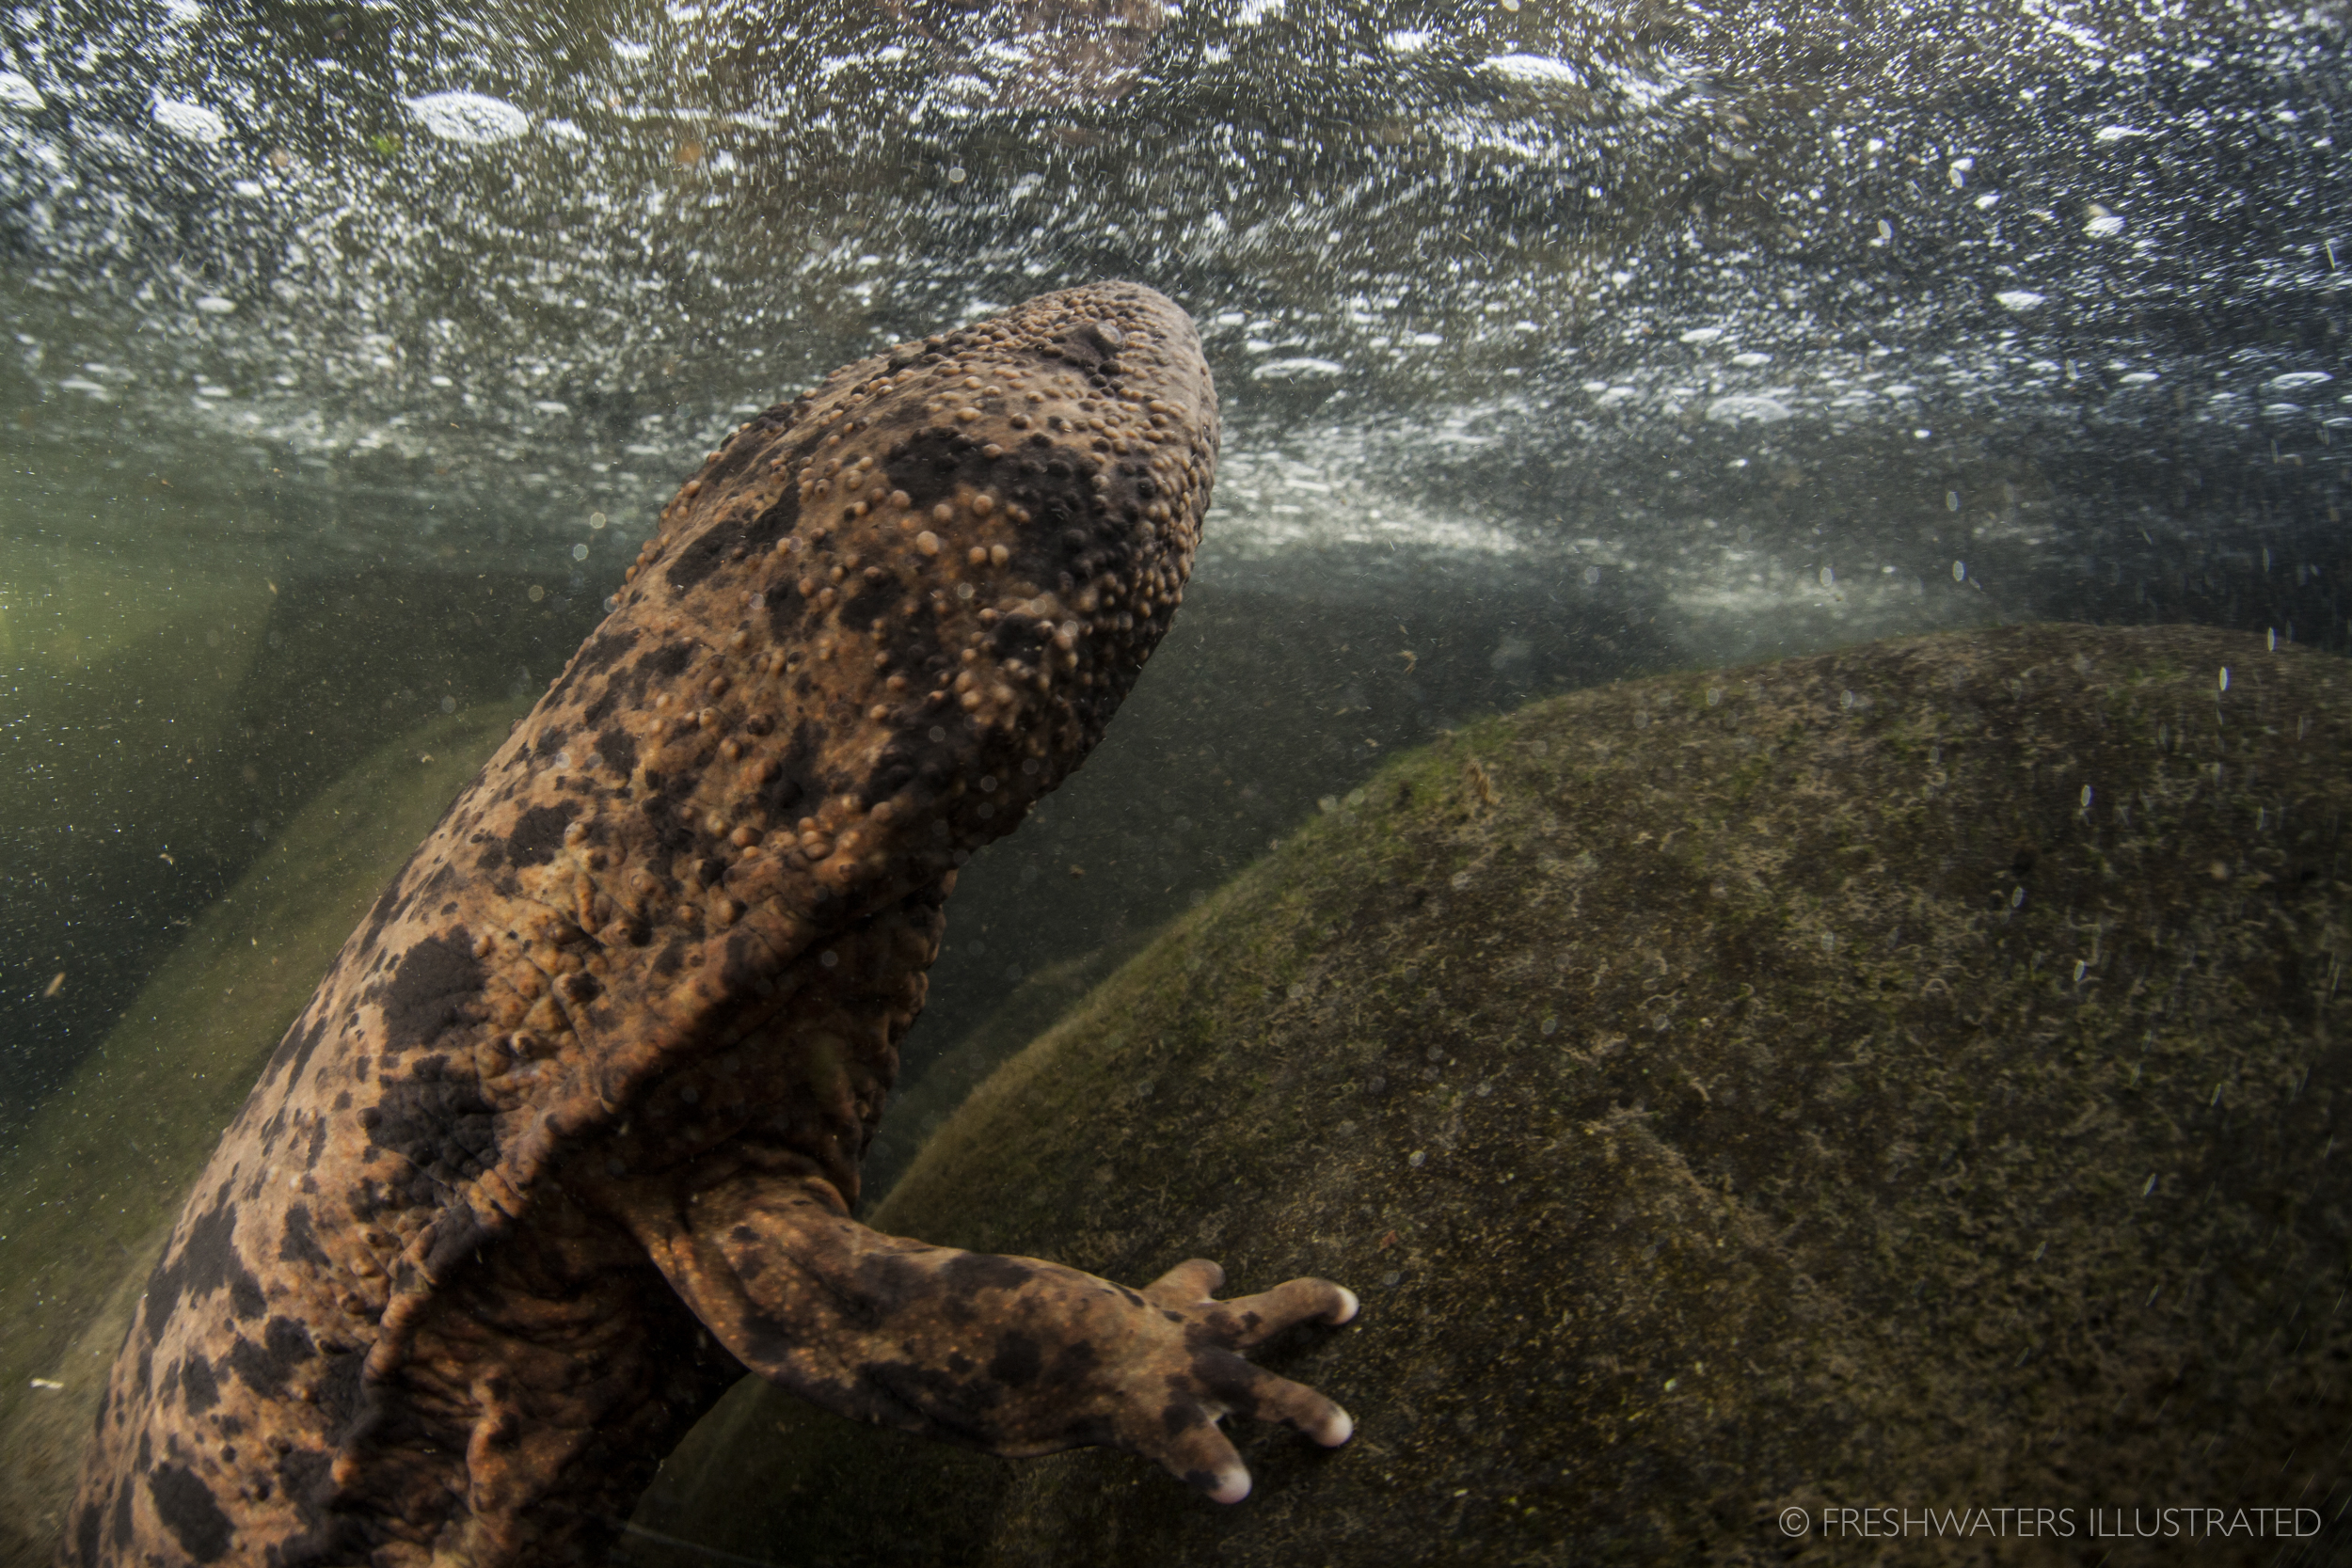 Japanese giant salamander (Andrias japonicus) Japan  www.FreshwatersIllustrated.org